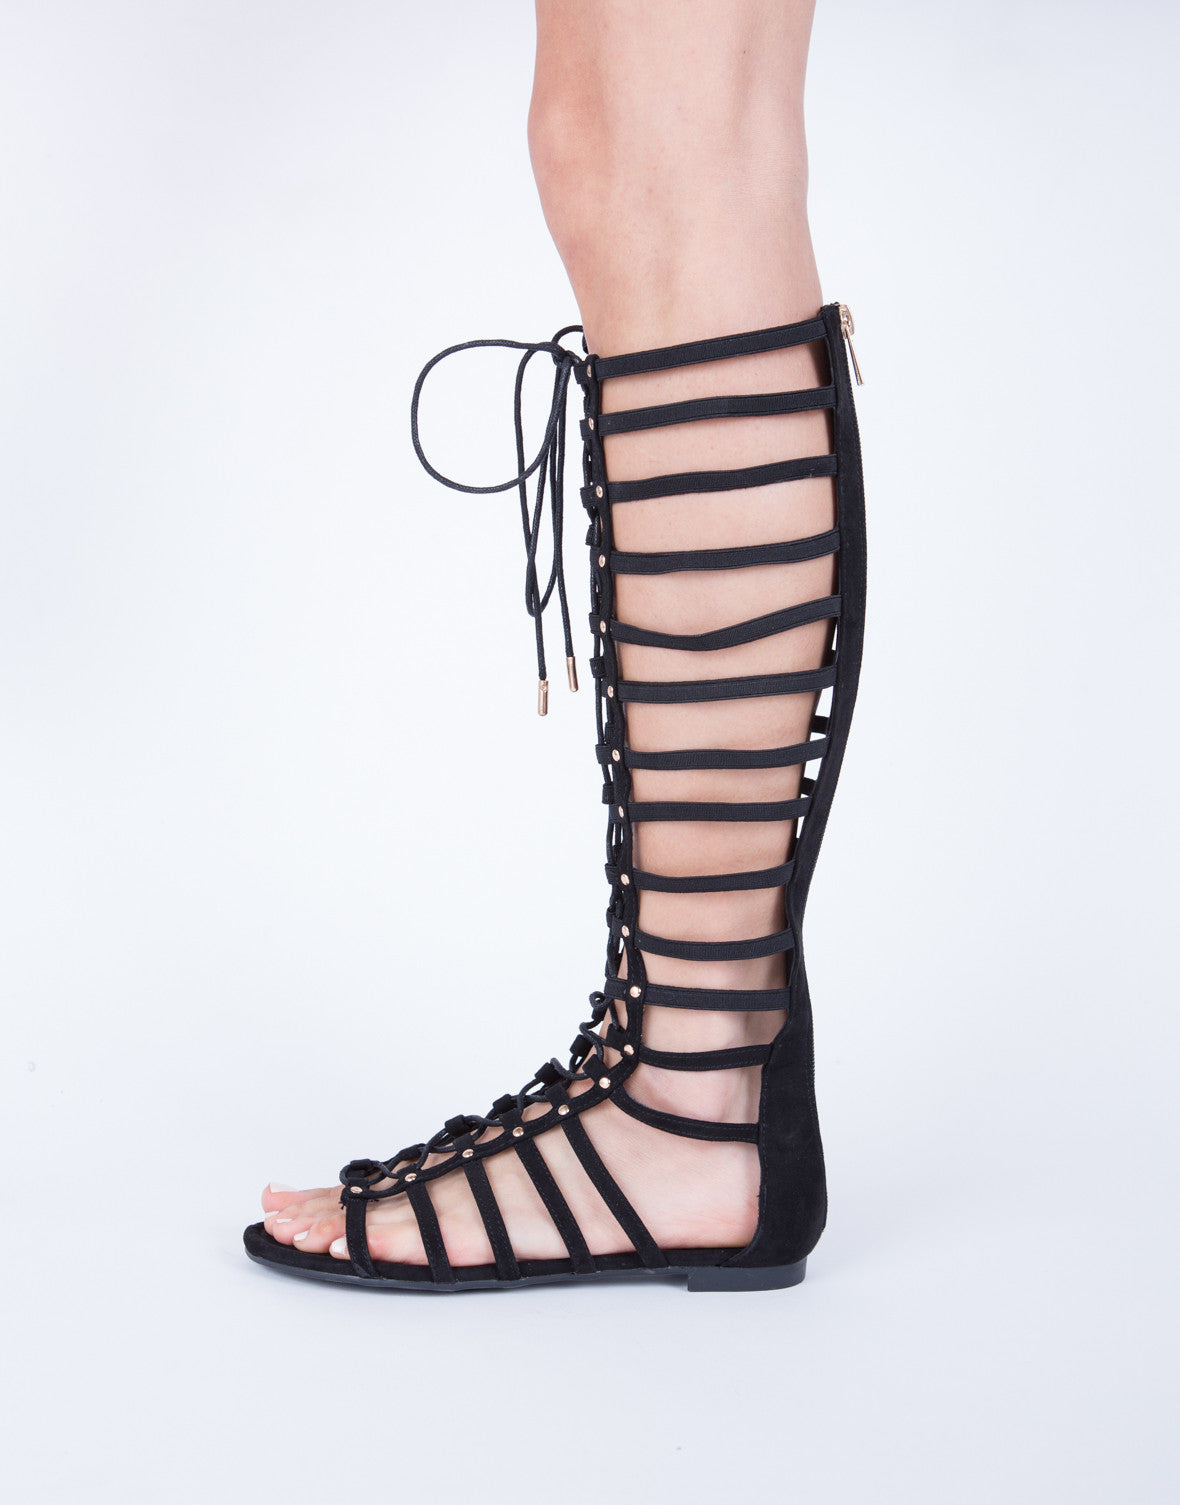 56f45325311a Stretchy Tall Lace-Up Sandals - Black Gladiator Sandals - Studded ...